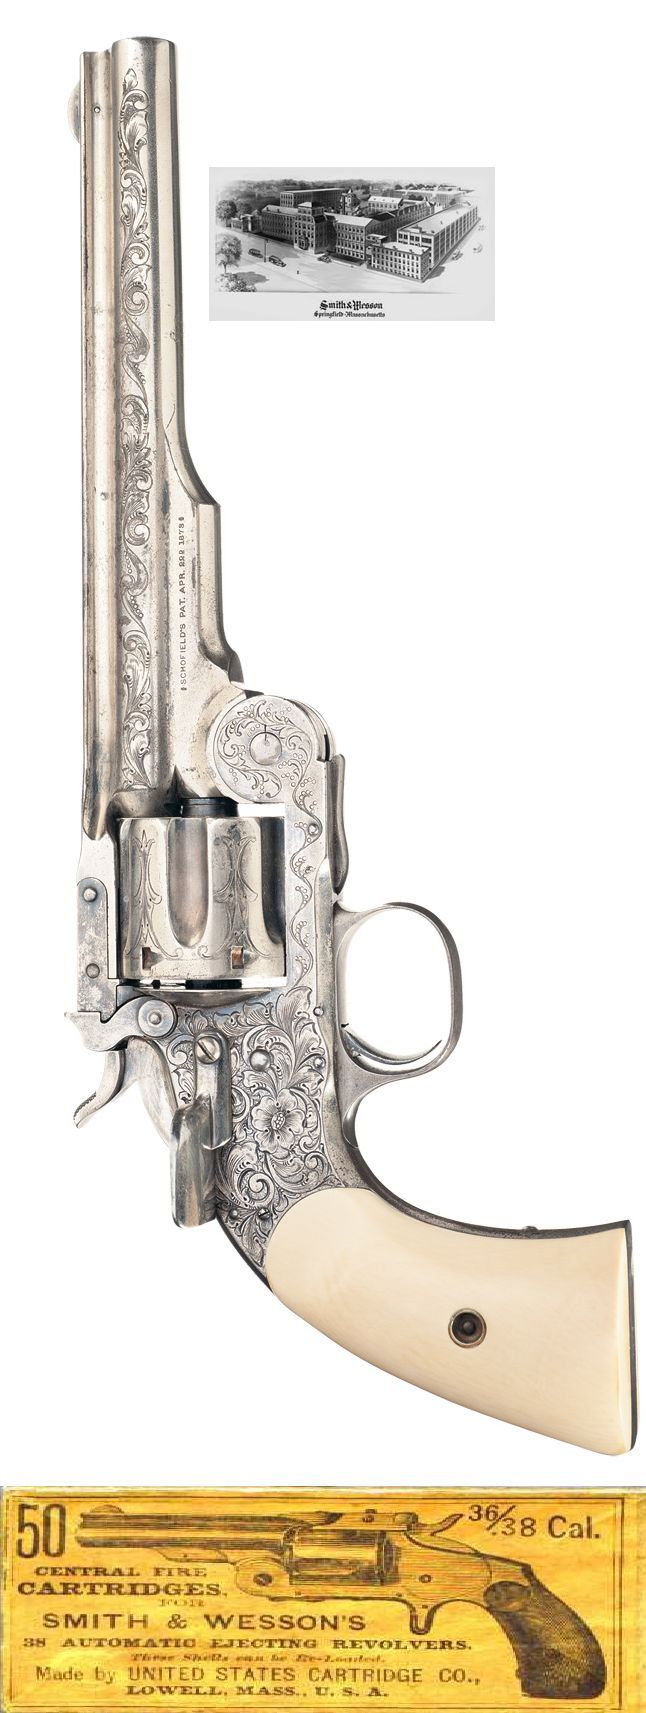 wesson single guys You will get smith wesson firearms smith wesson  auto for endure or unhealthy guys dan wesson's razorback rz-10 offers  is single action, and while.